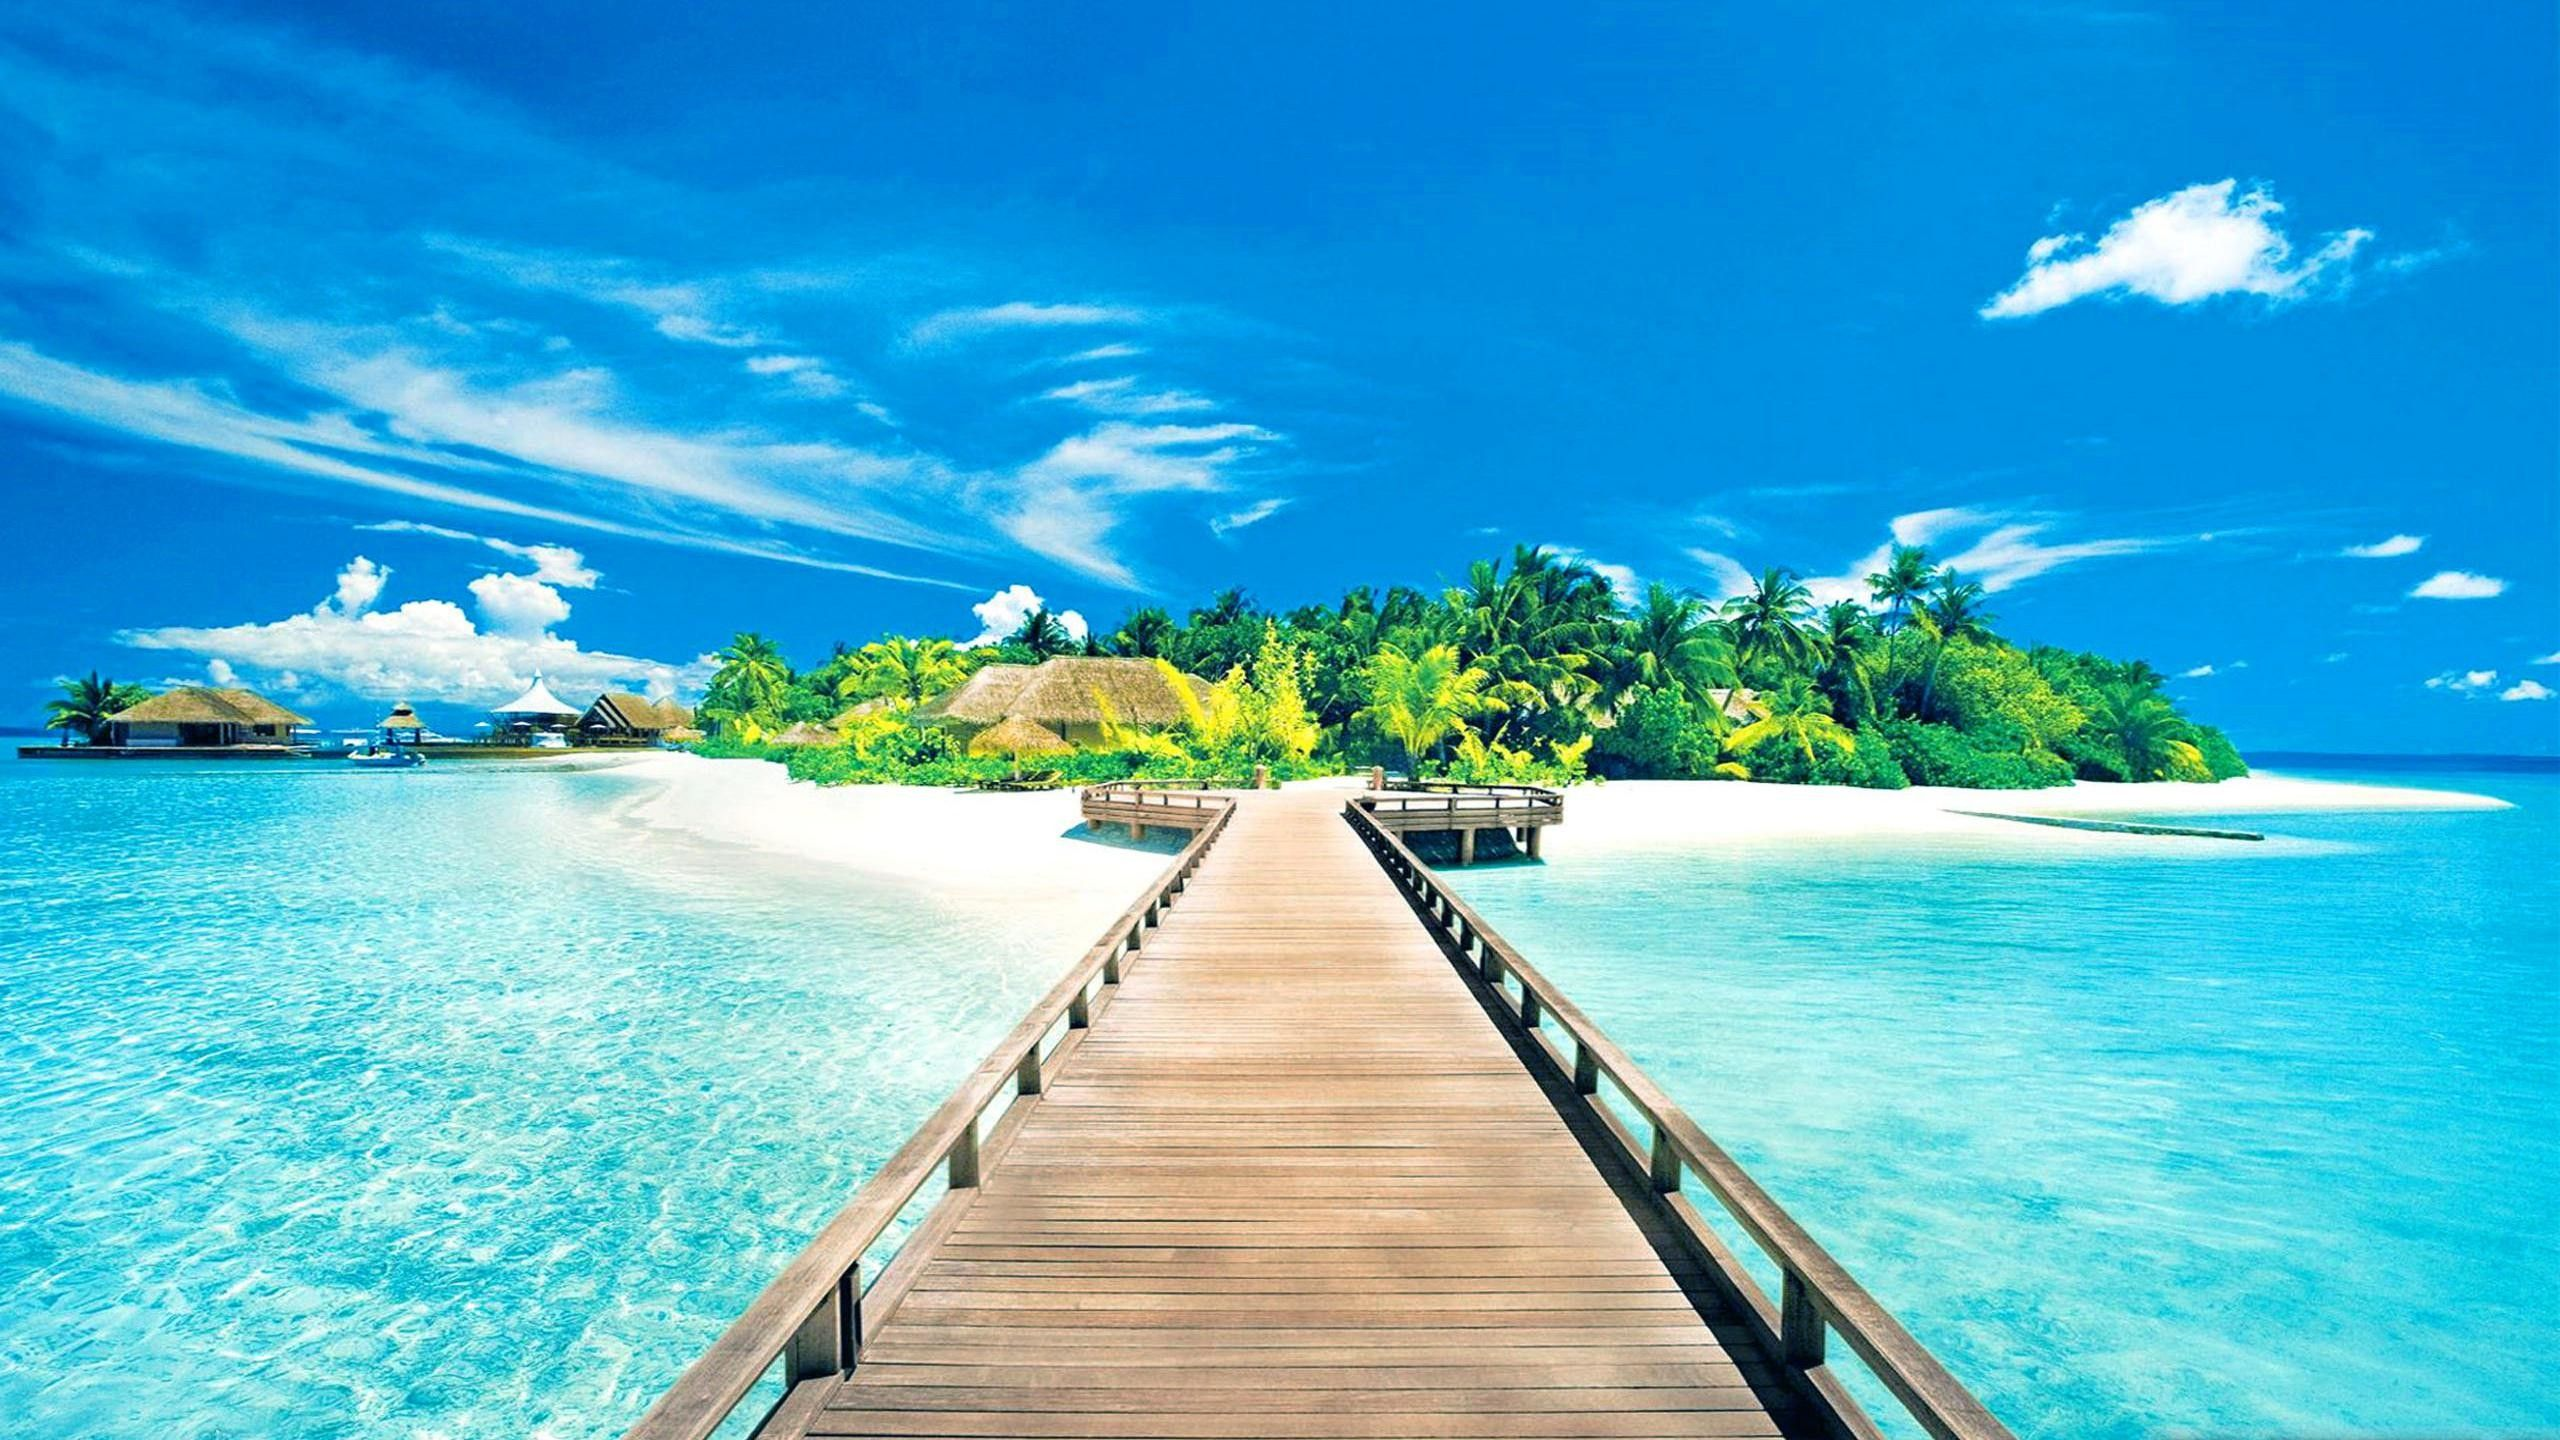 Tropical Island Wallpapers Top Free Tropical Island